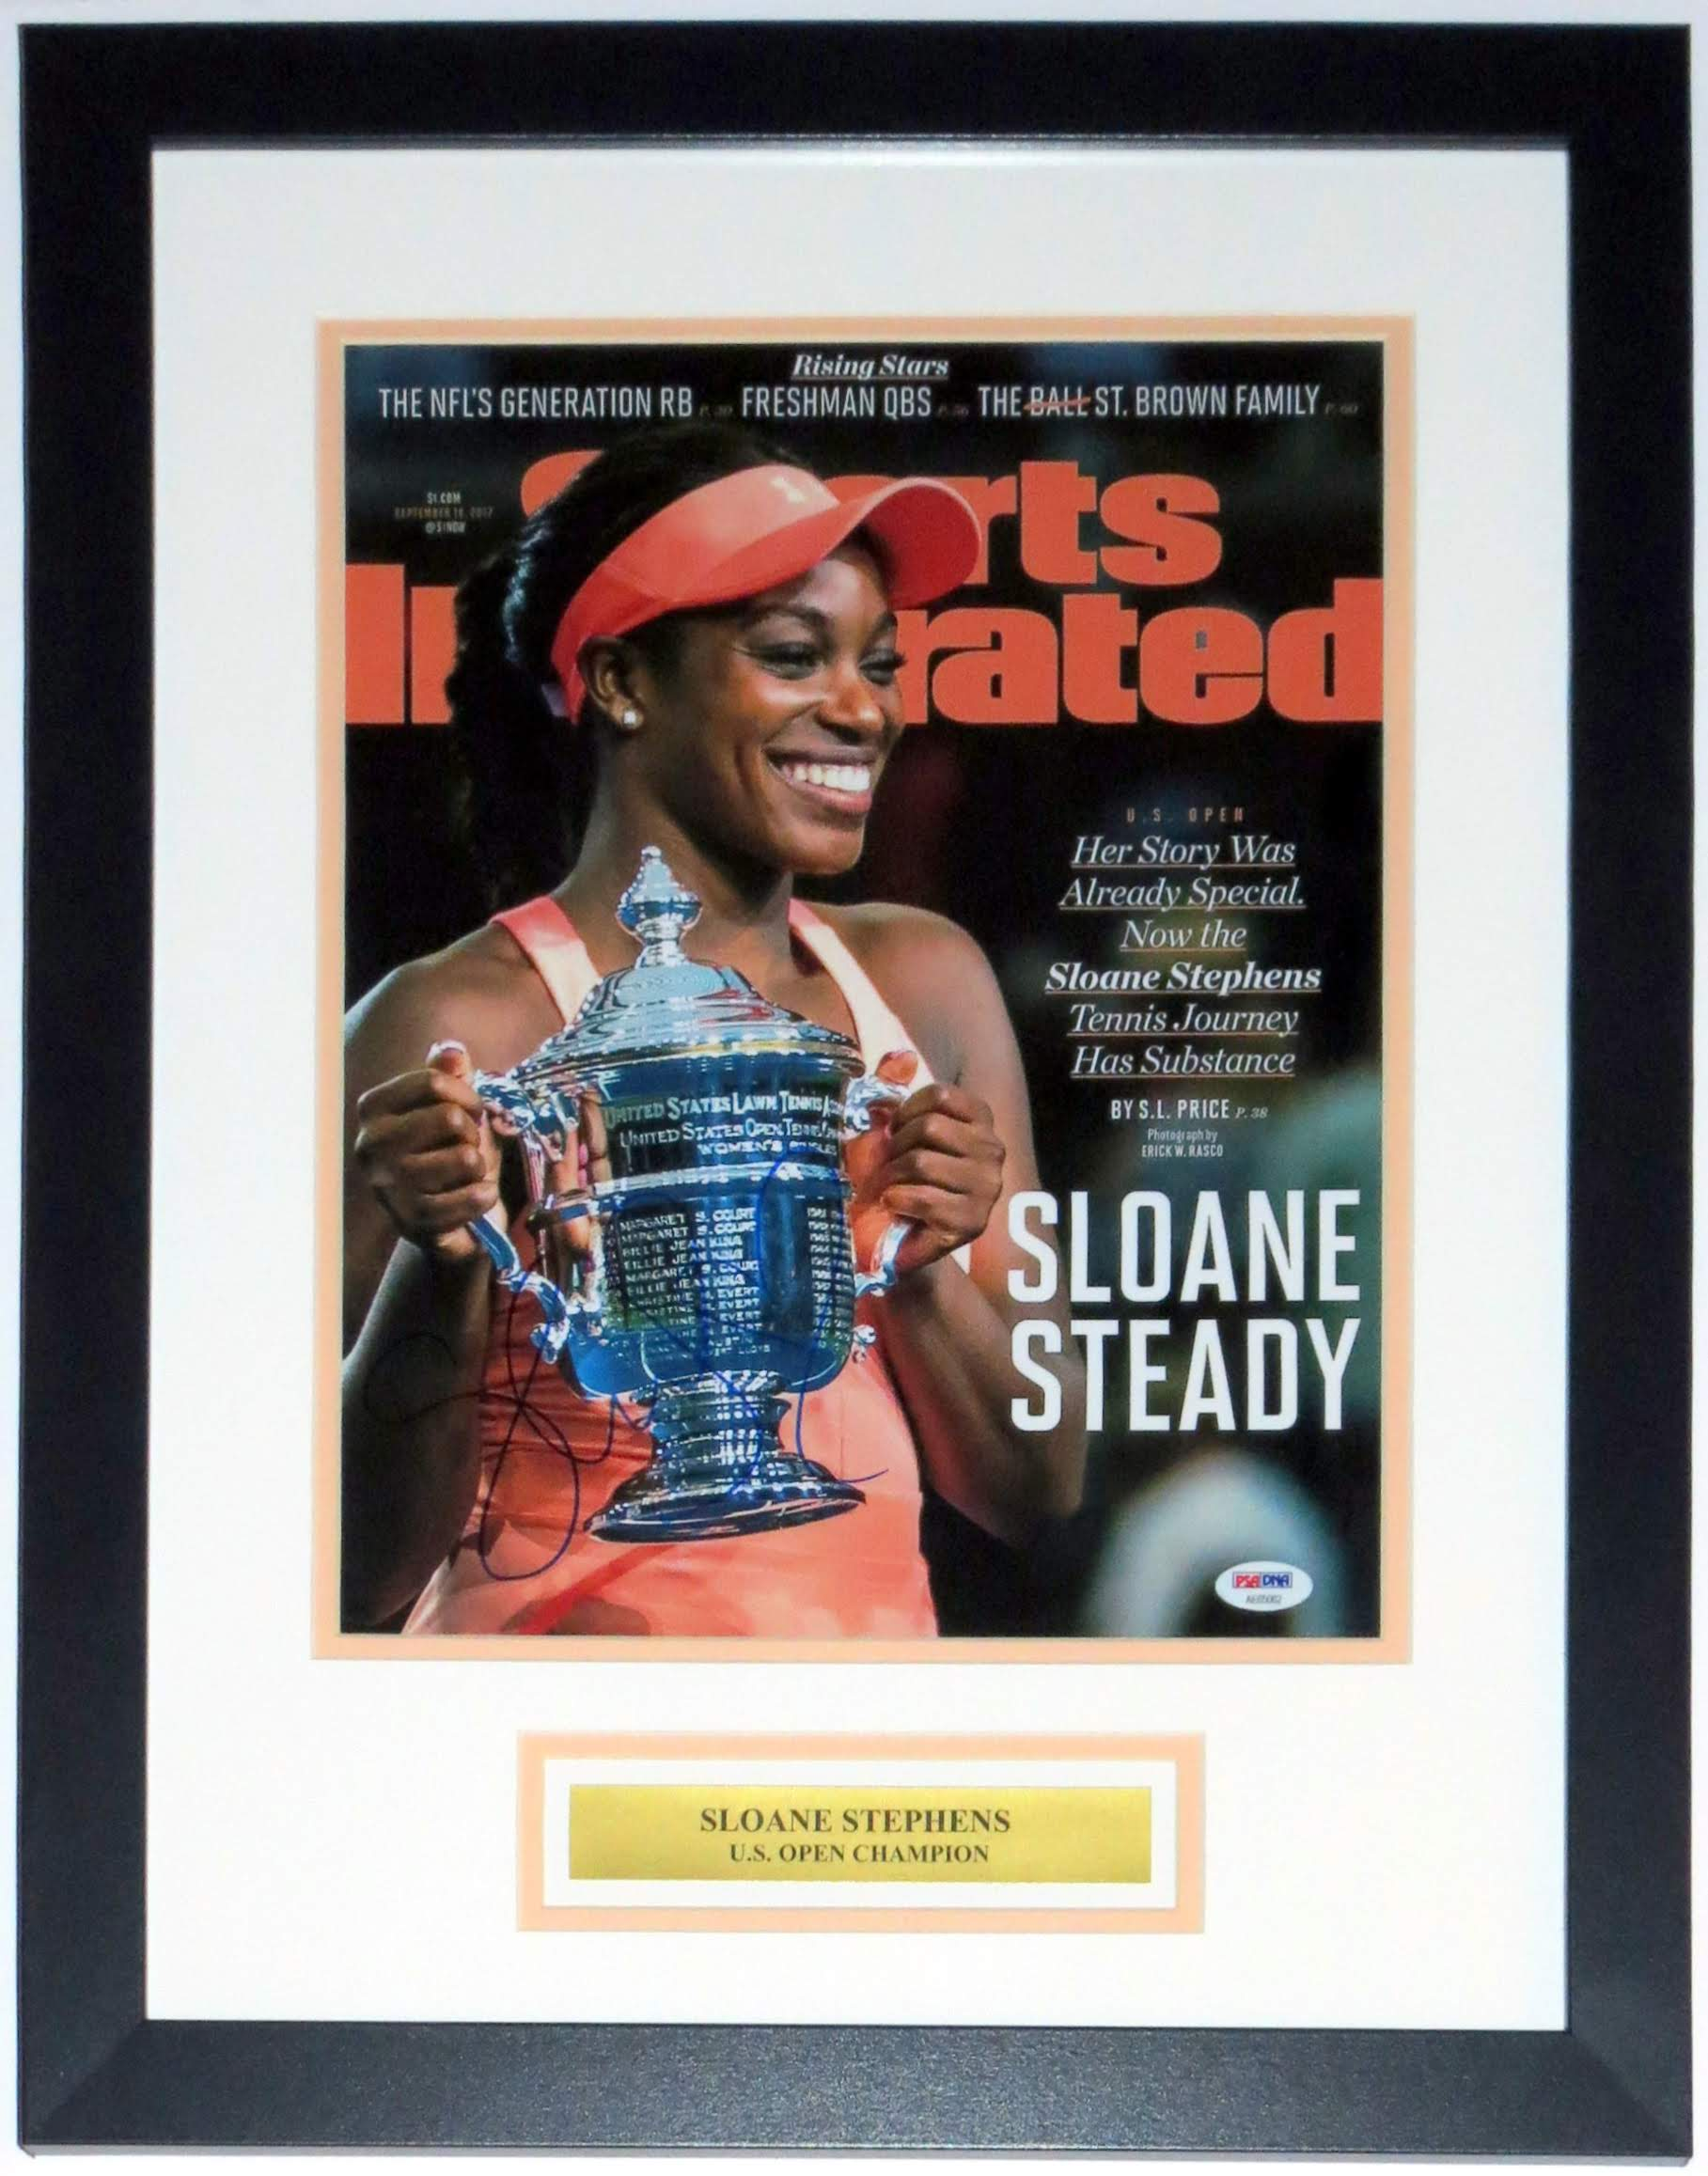 Sloane Stephens Signed US Open Sports Illustrated 11x14 Photo - PSA DNA COA Authenticated - Professionally Framed & Plate